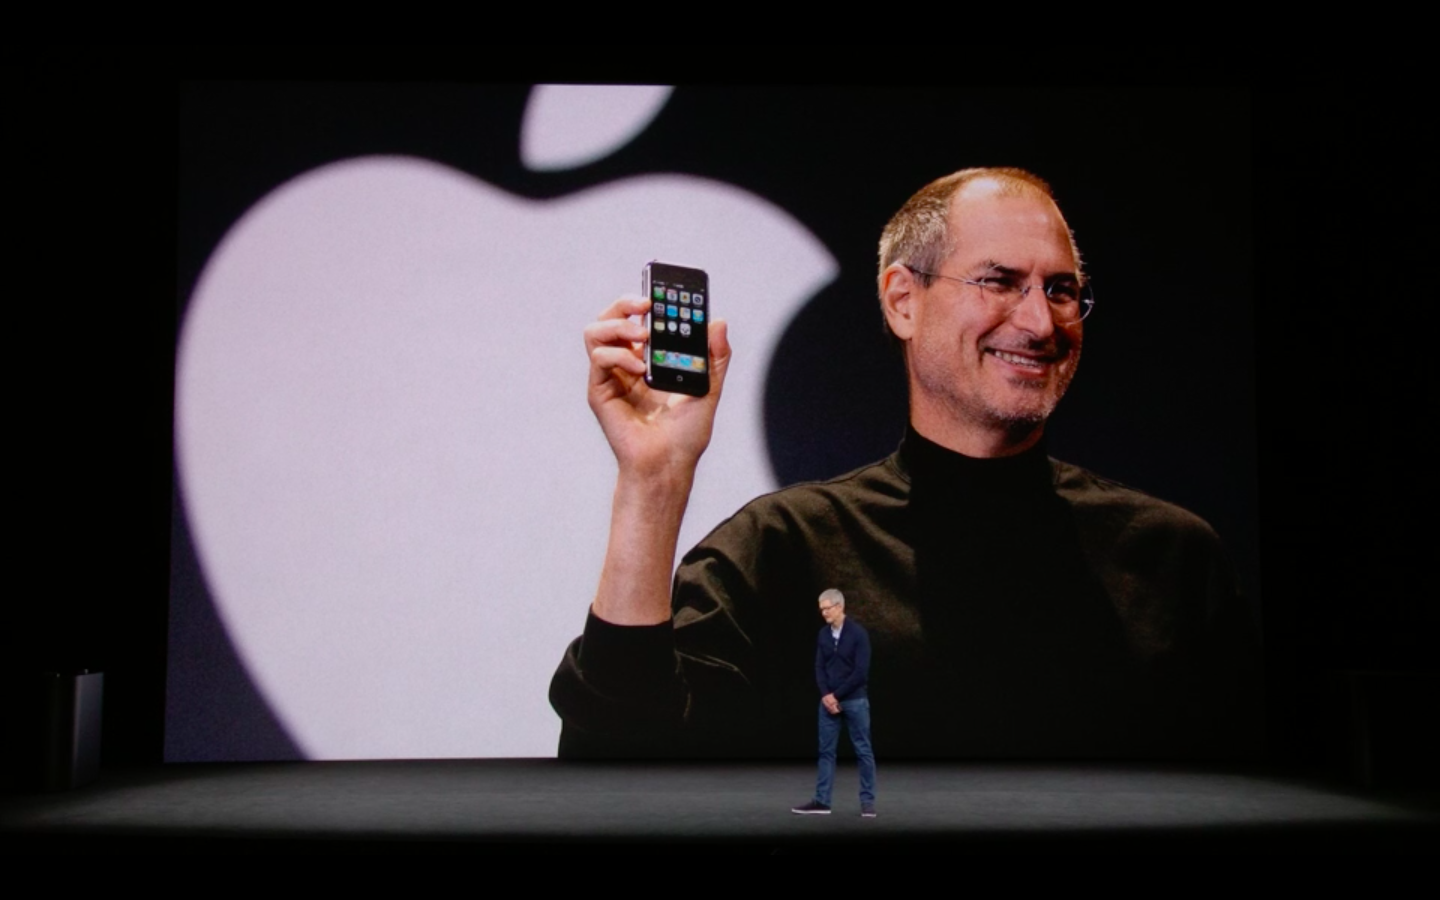 Tim Cook speaking in front of a photo of Steve Jobs at the Apple event on Tuesday.